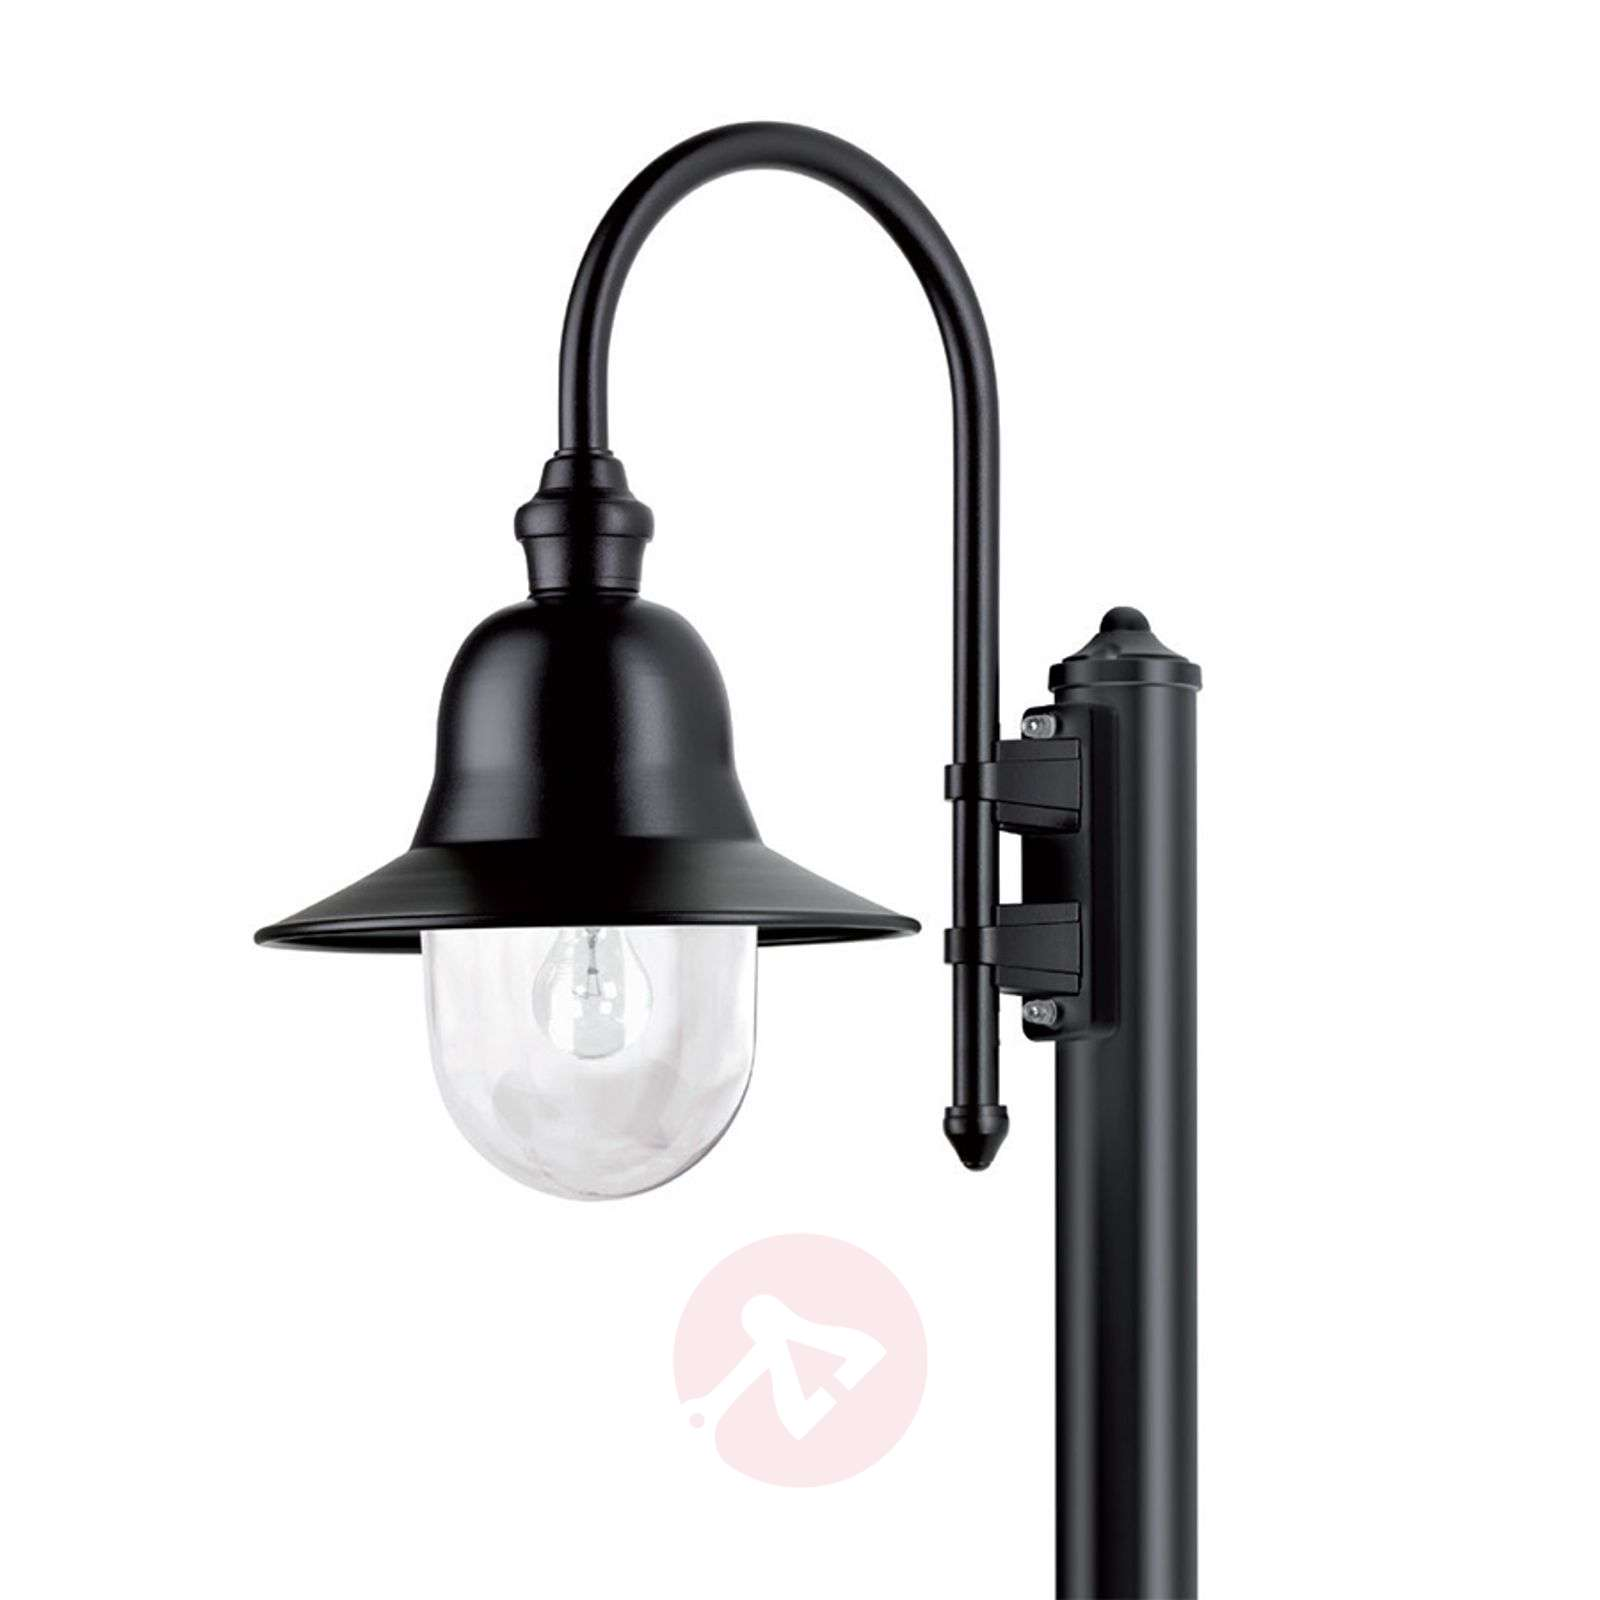 Nios durable path light in black-6068080-01